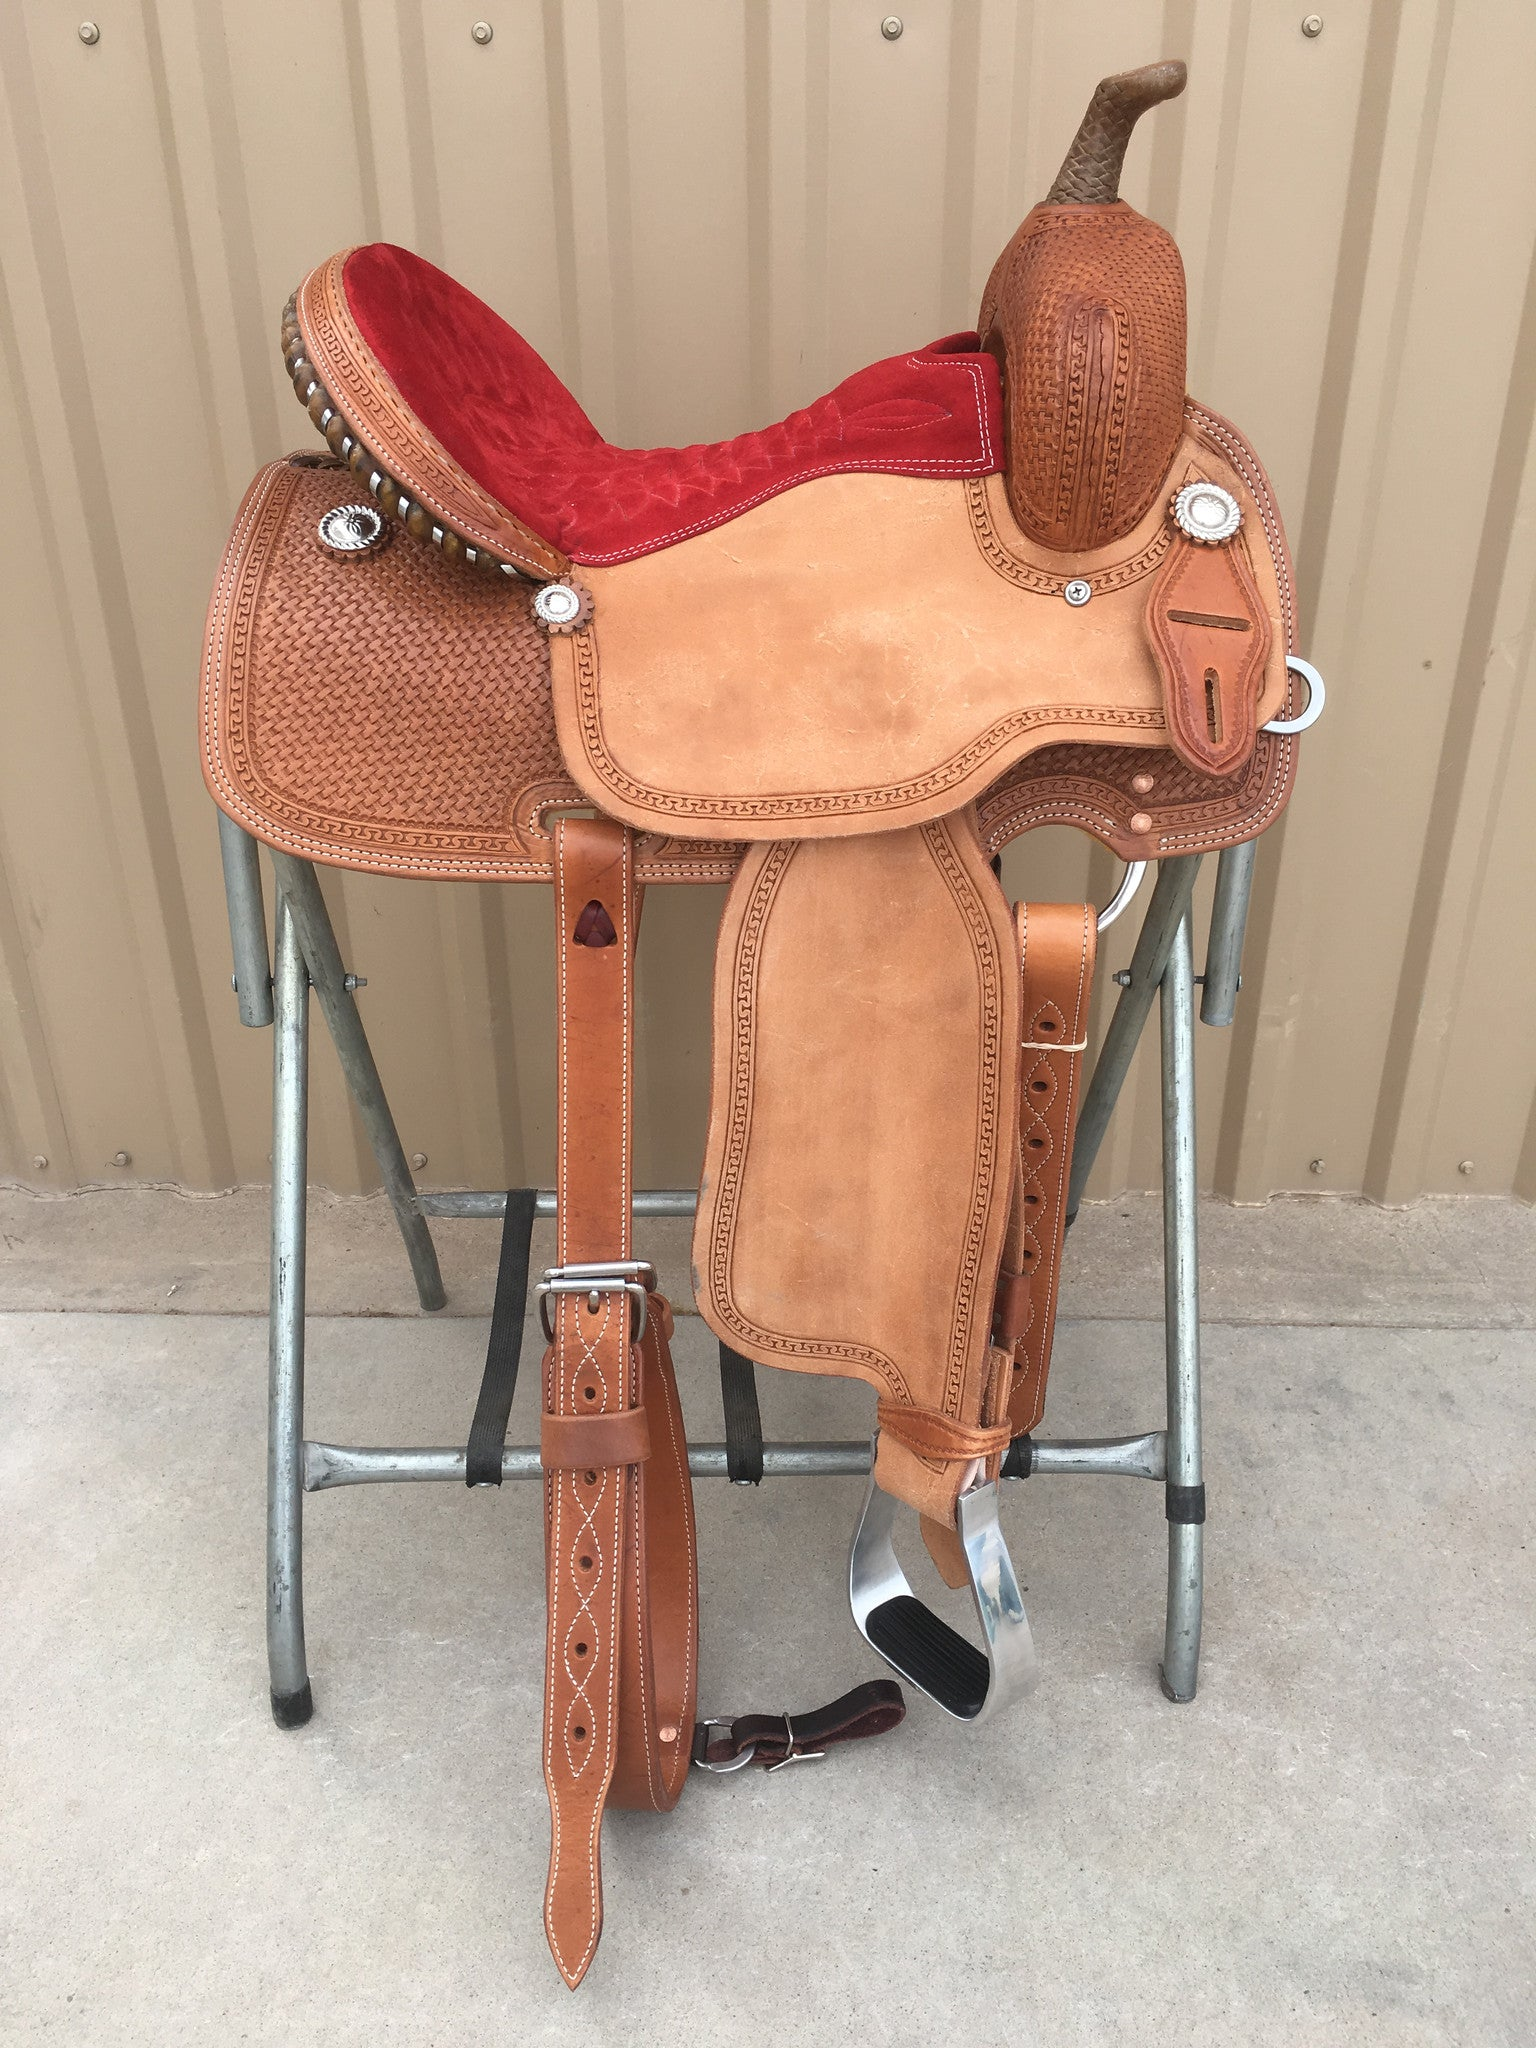 Corriente Barrel Racing Saddle SB558A - The Sale Barn - 1